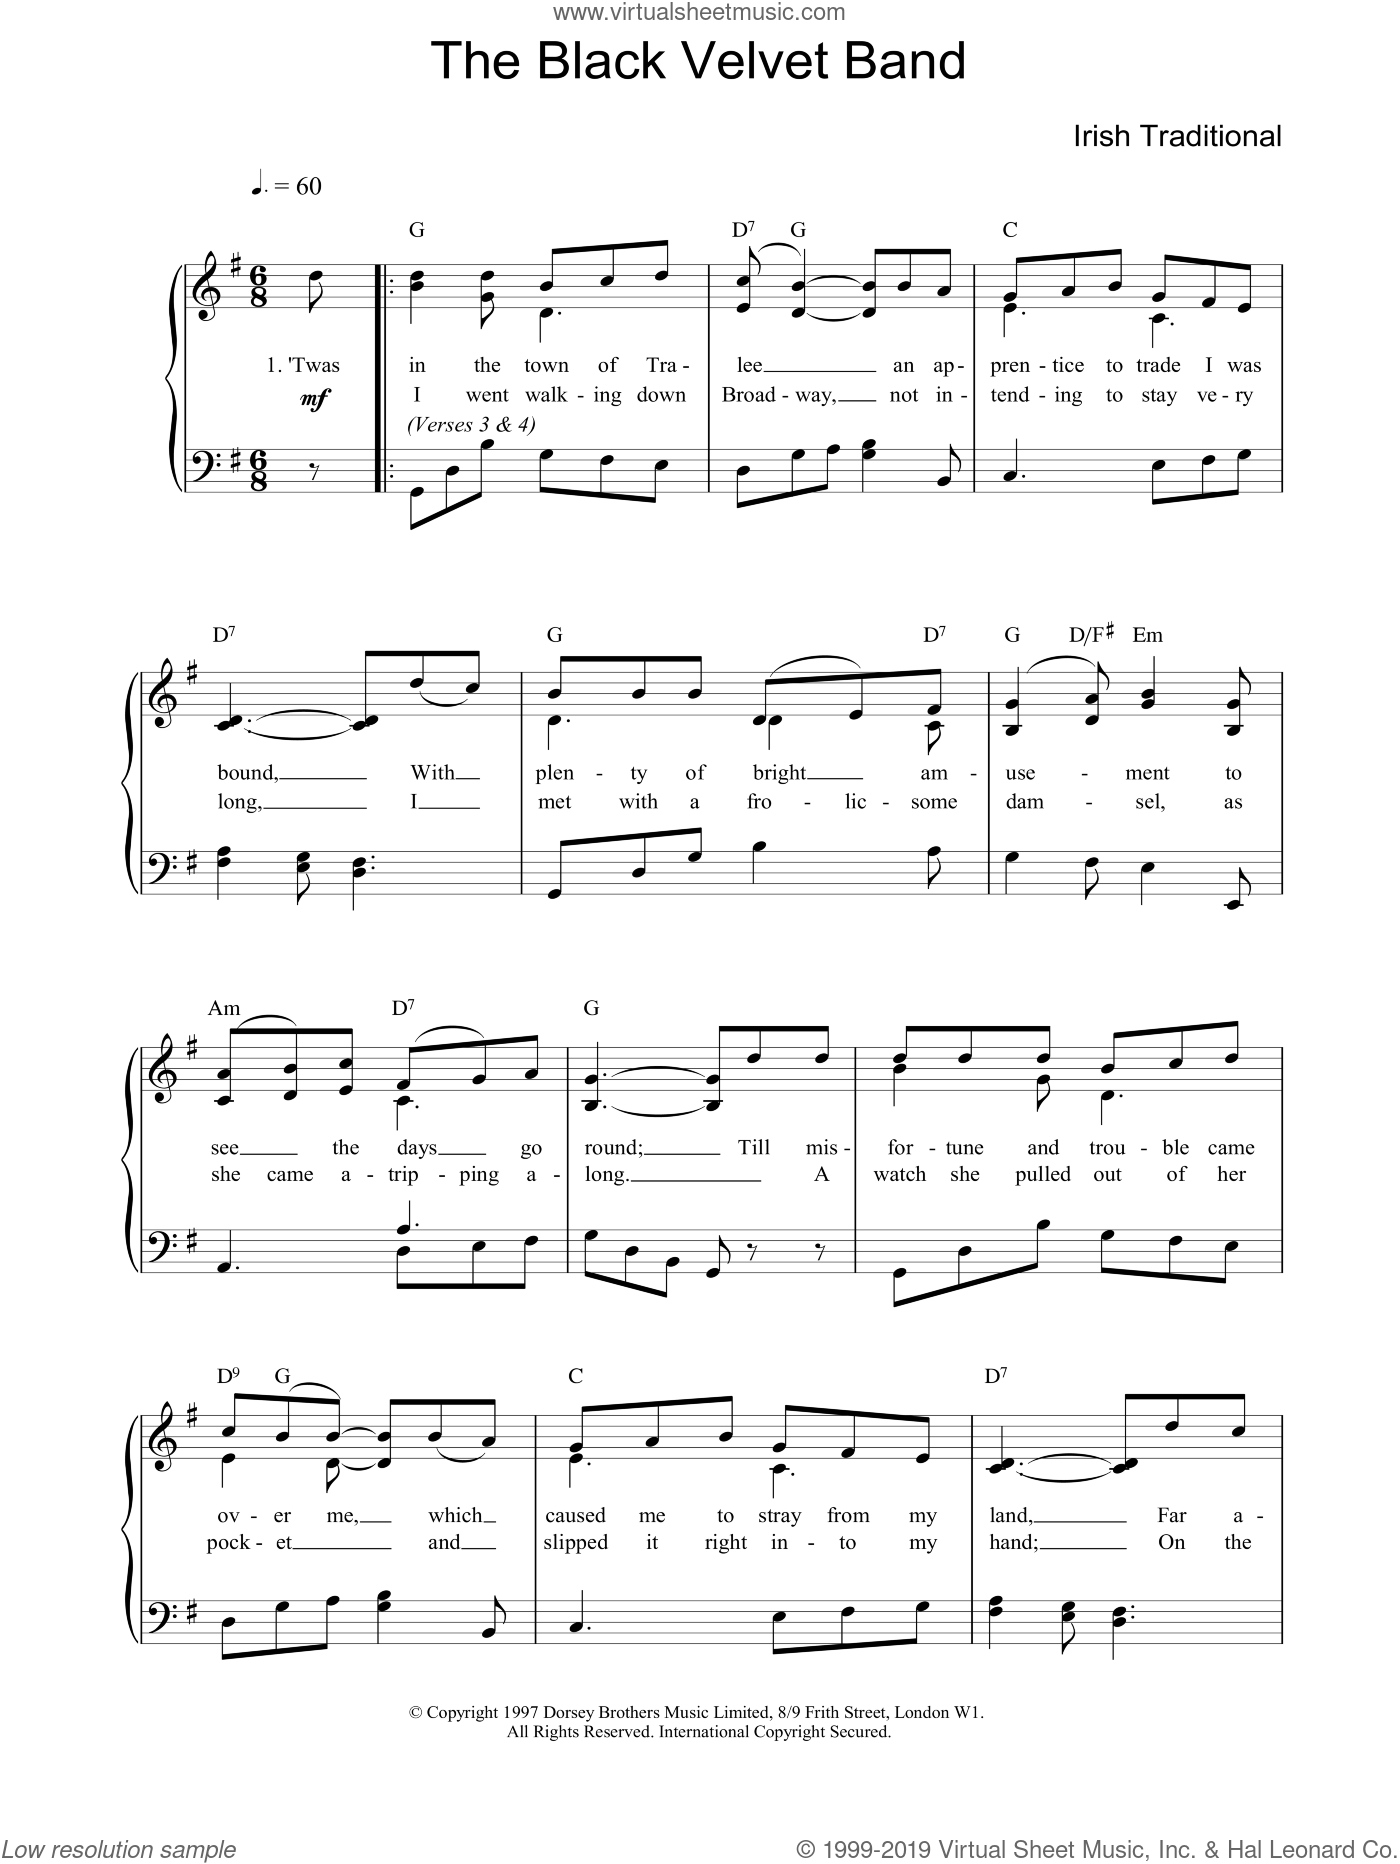 The Black Velvet Band sheet music for piano solo, easy skill level